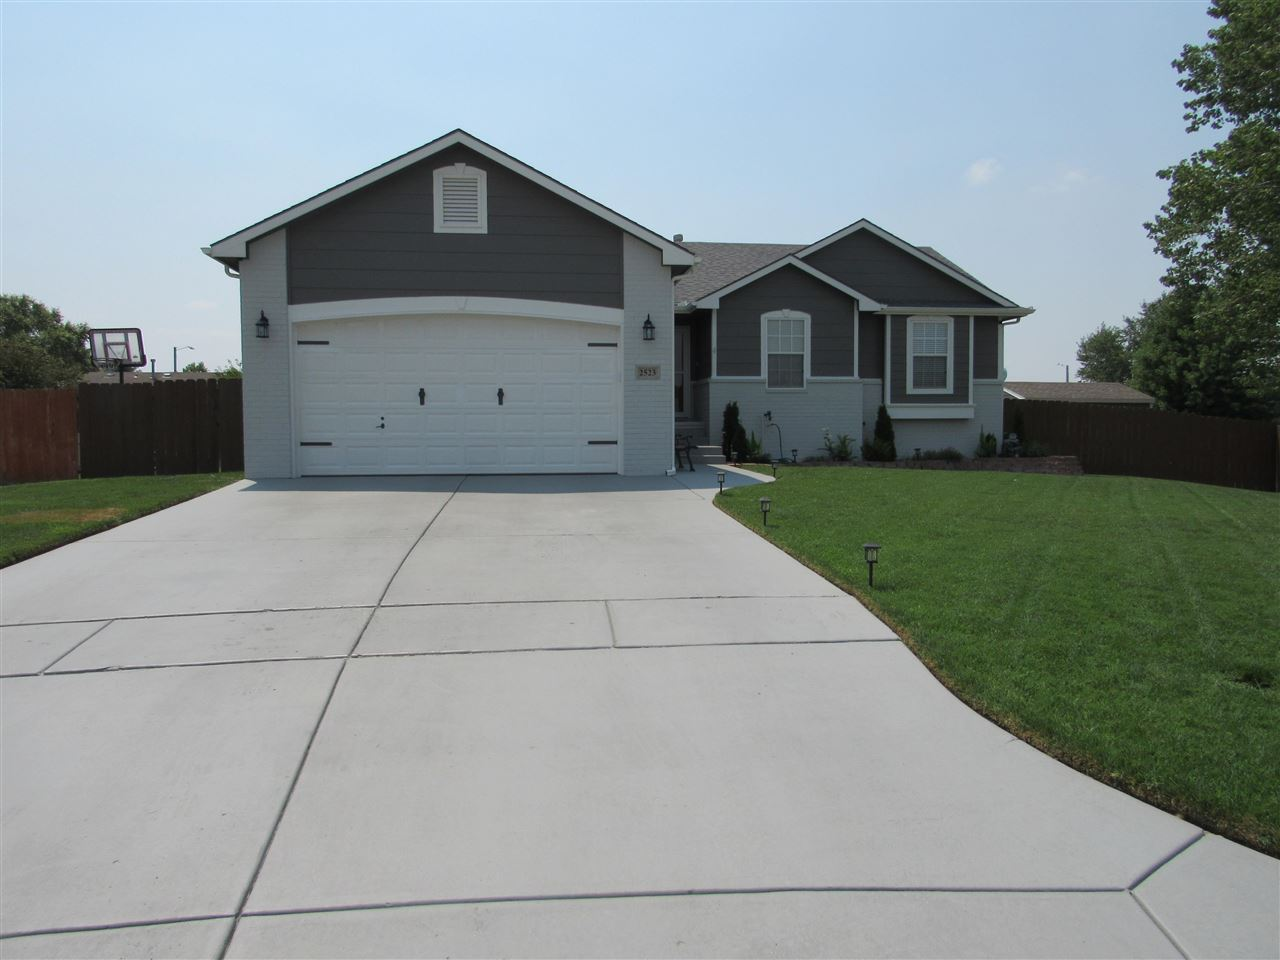 UNPACK AND MOVE IN!  This darling  5 bedroom 3 bath home has been well maintained and ready for you